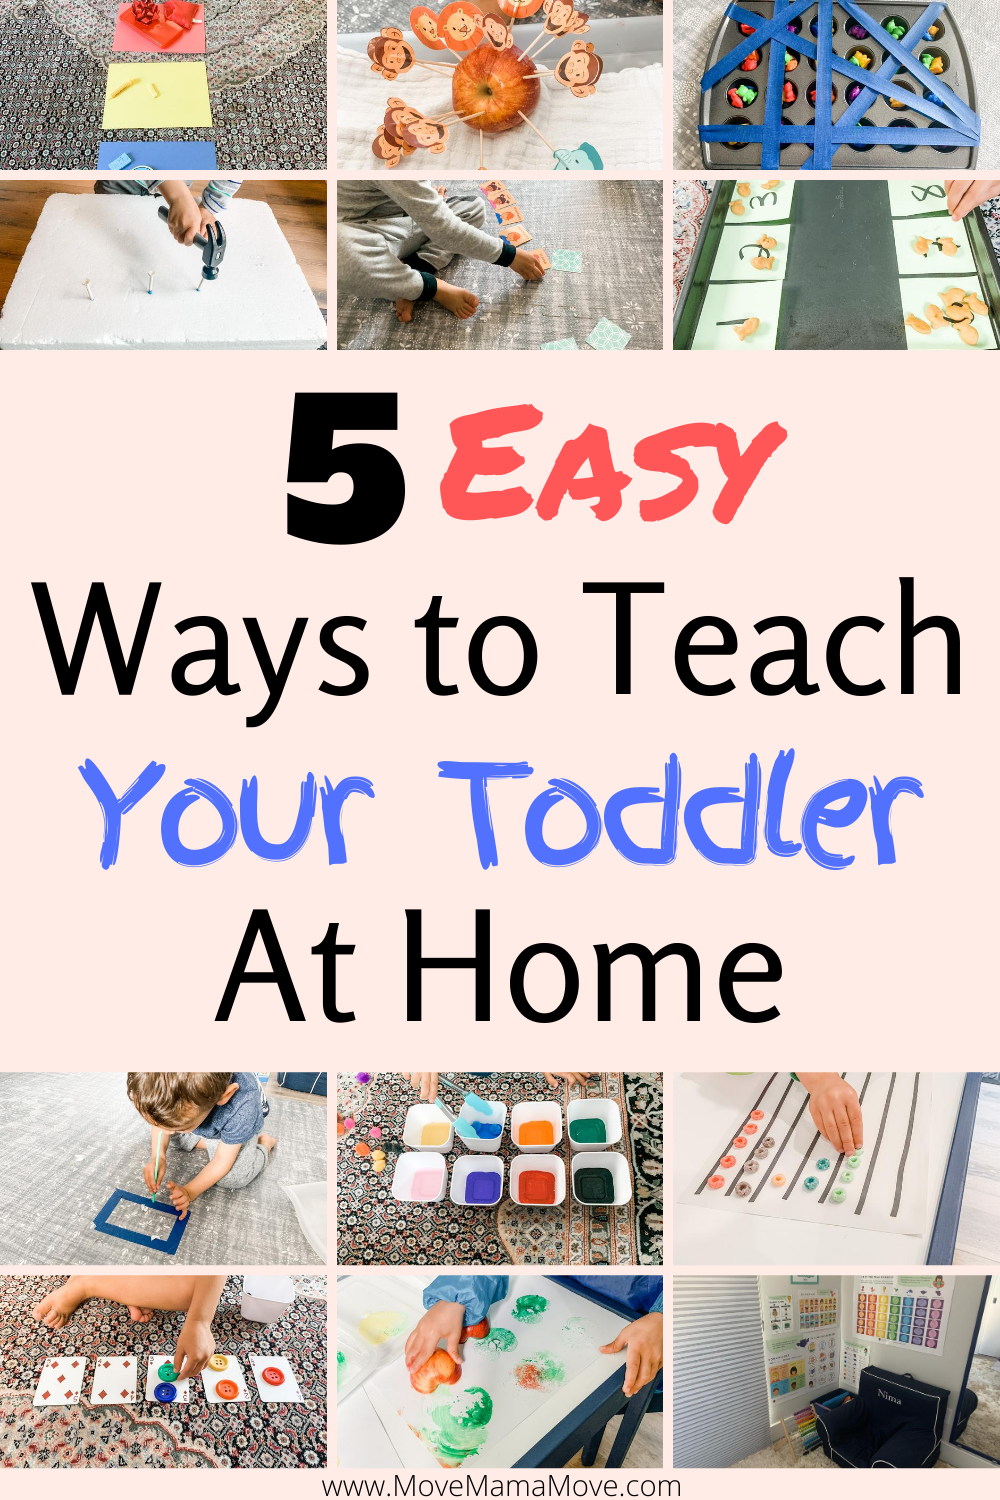 Collage of toddler activities including sorting, painting, counting, hammering, and more.